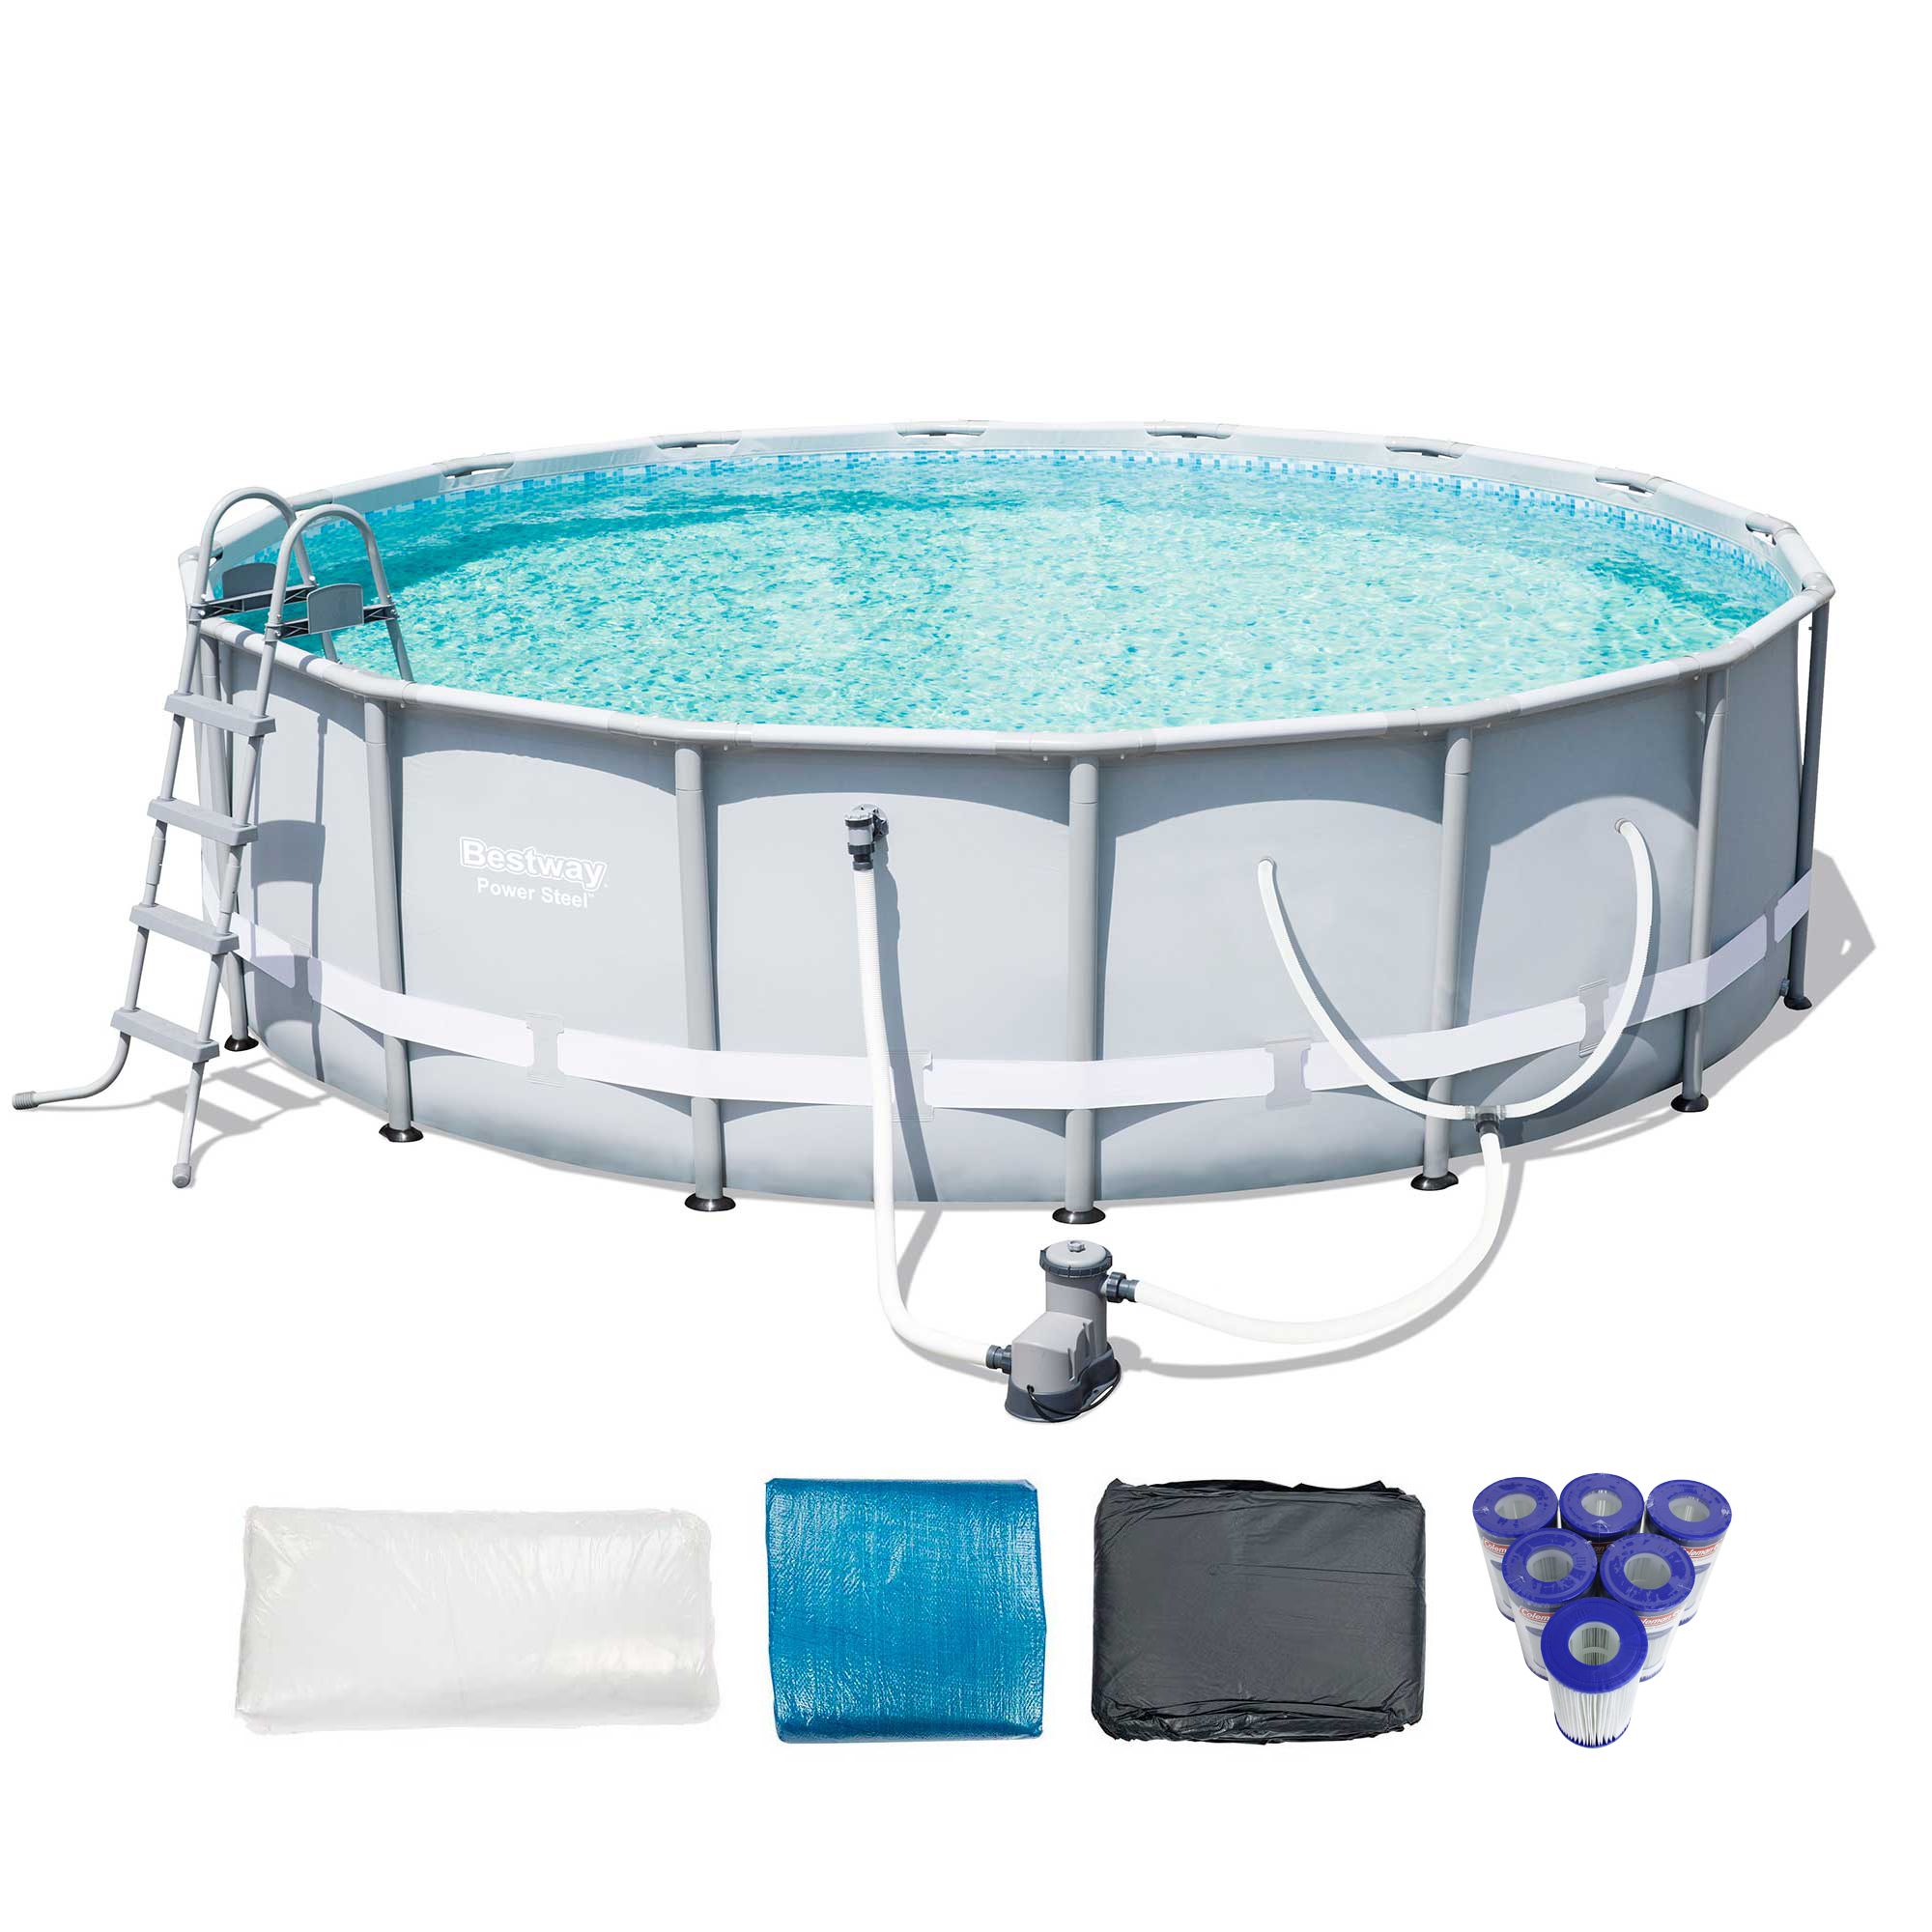 Bestway 16 39 x 48 power steel frame above ground pool set - Bestway steel frame swimming pool ...